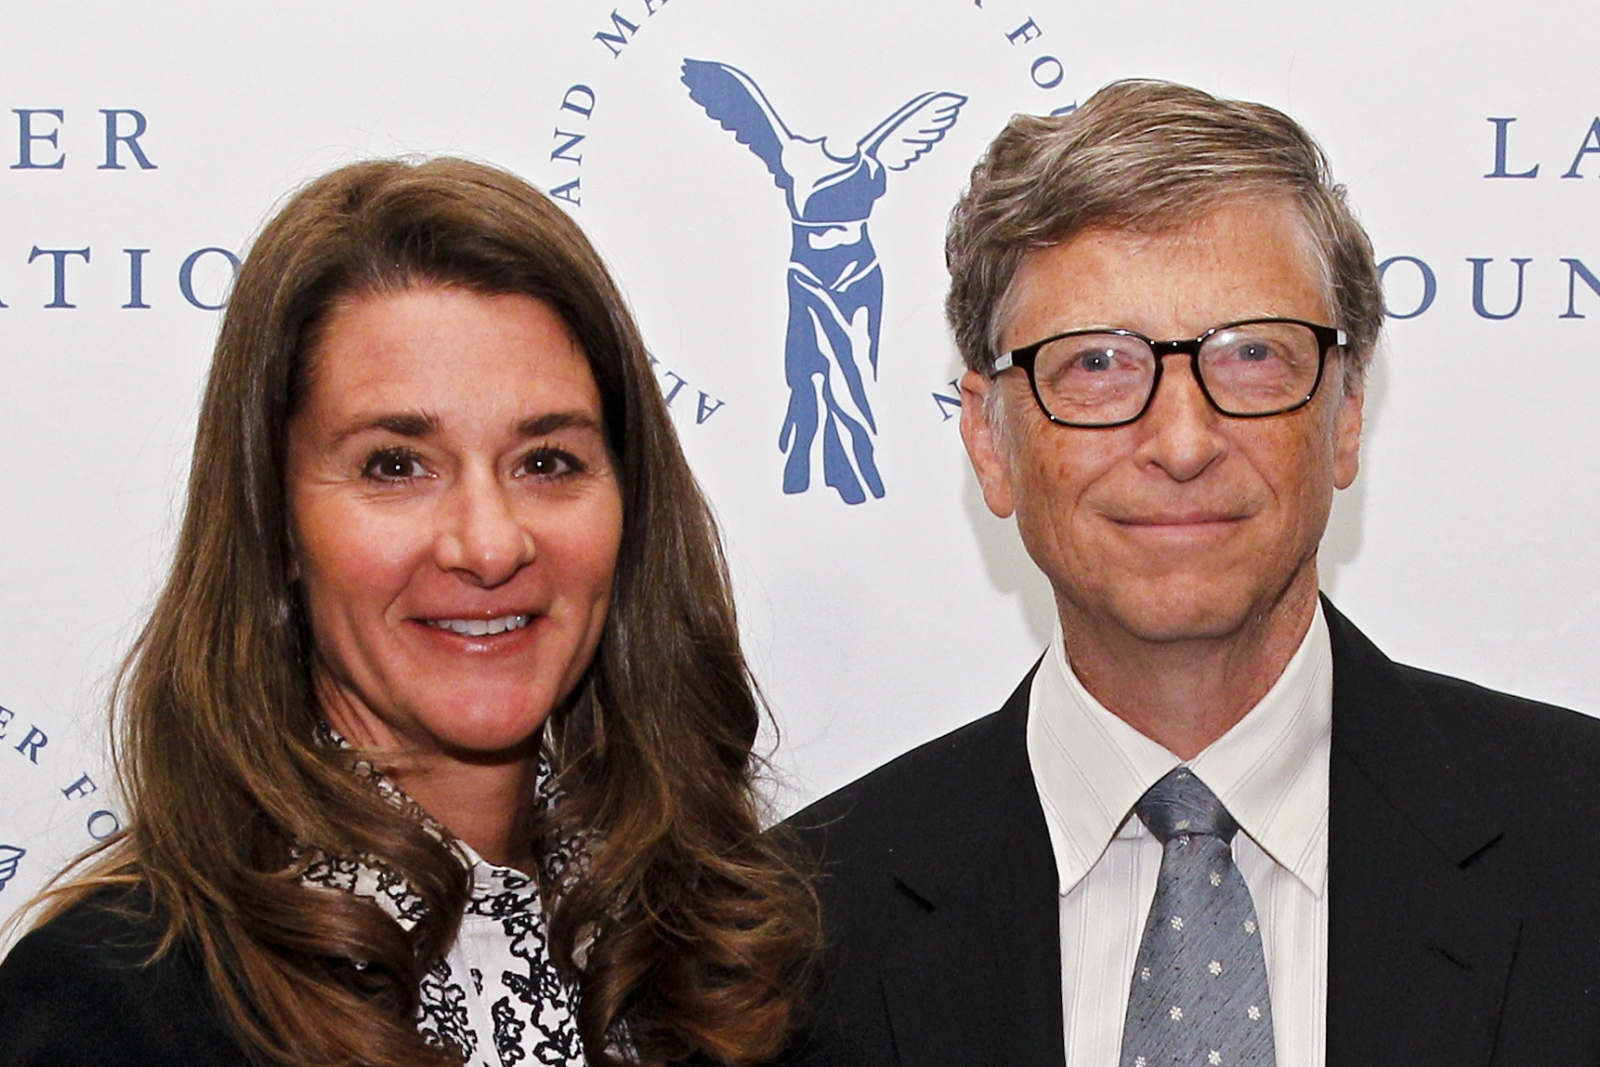 Who is Melinda Gates: Biography, Personal Life, Career, Net Worth and Work After Divorcing